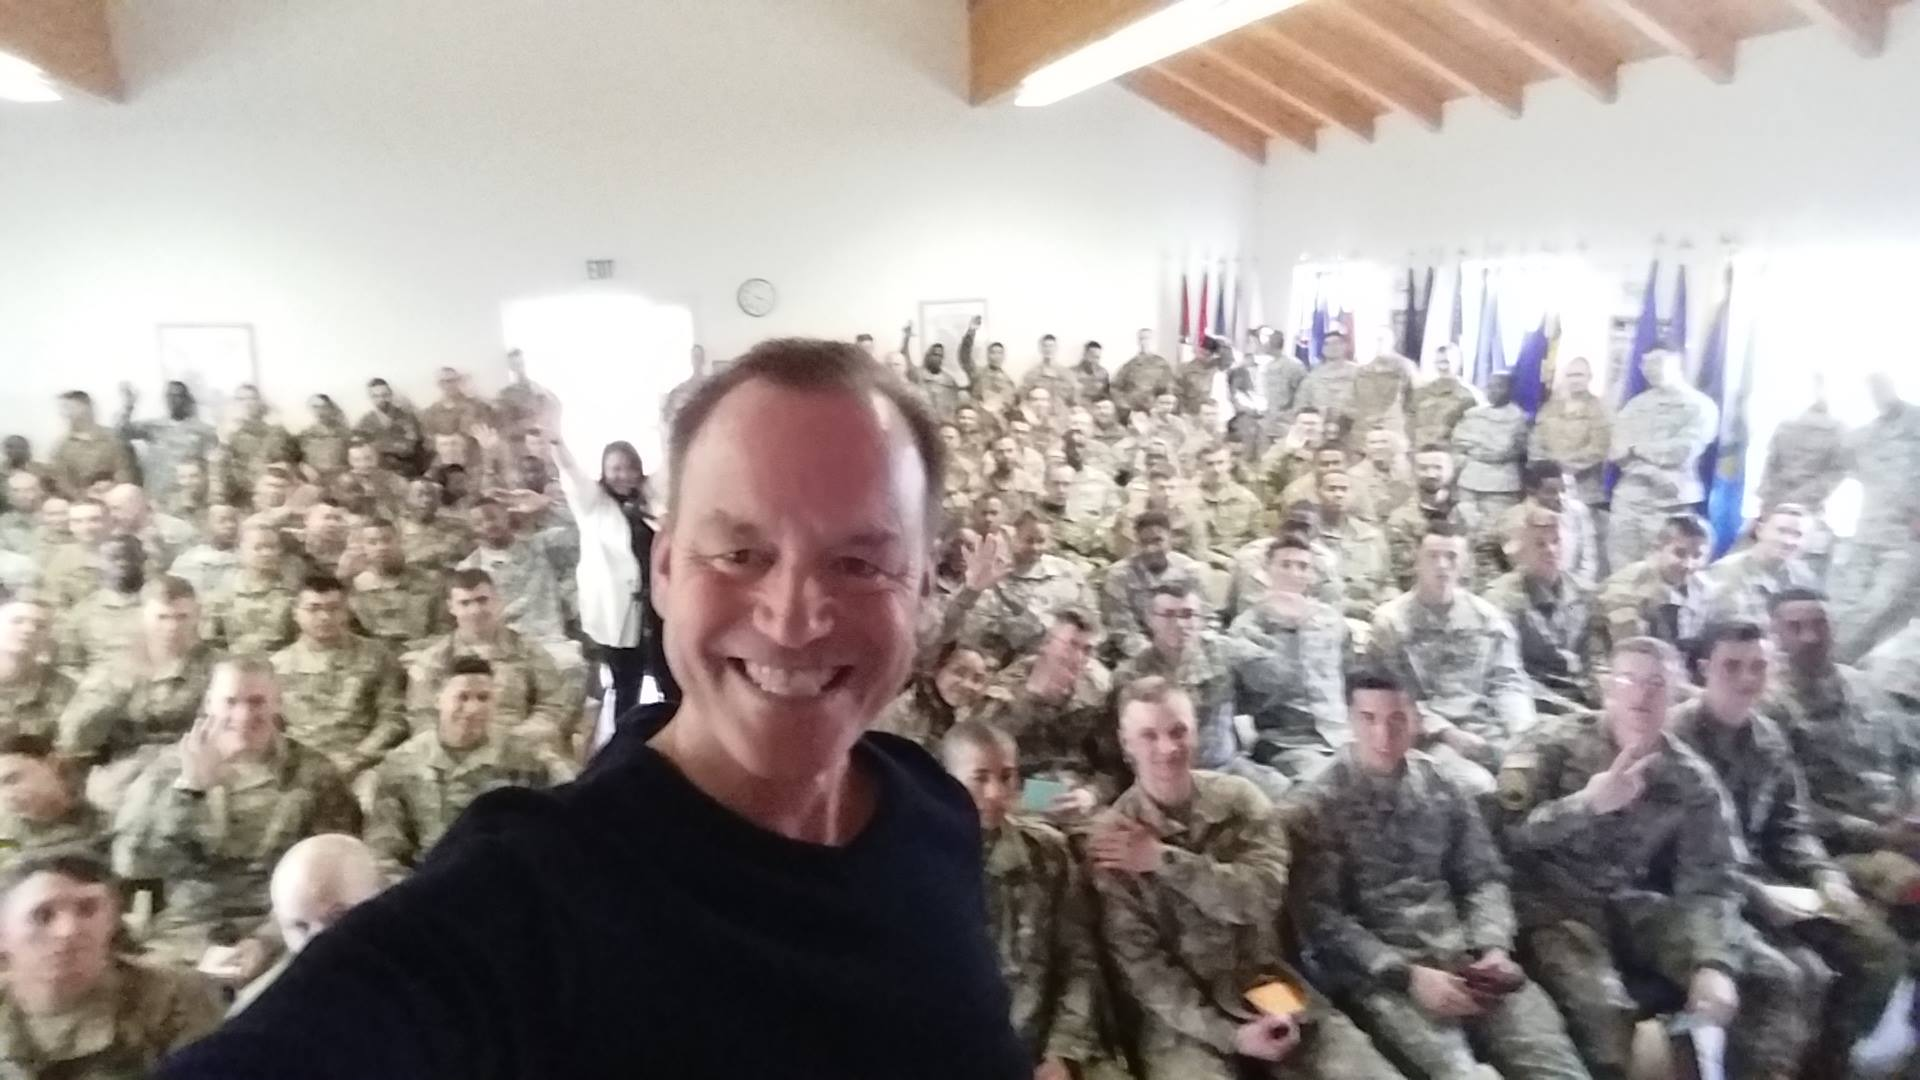 Gregory Q. Cheek snapped a photo after speaking at the 7th Army NCO Academy in Bad Tolz, Germany. (Photo courtesy of Gregory Q. Cheek)